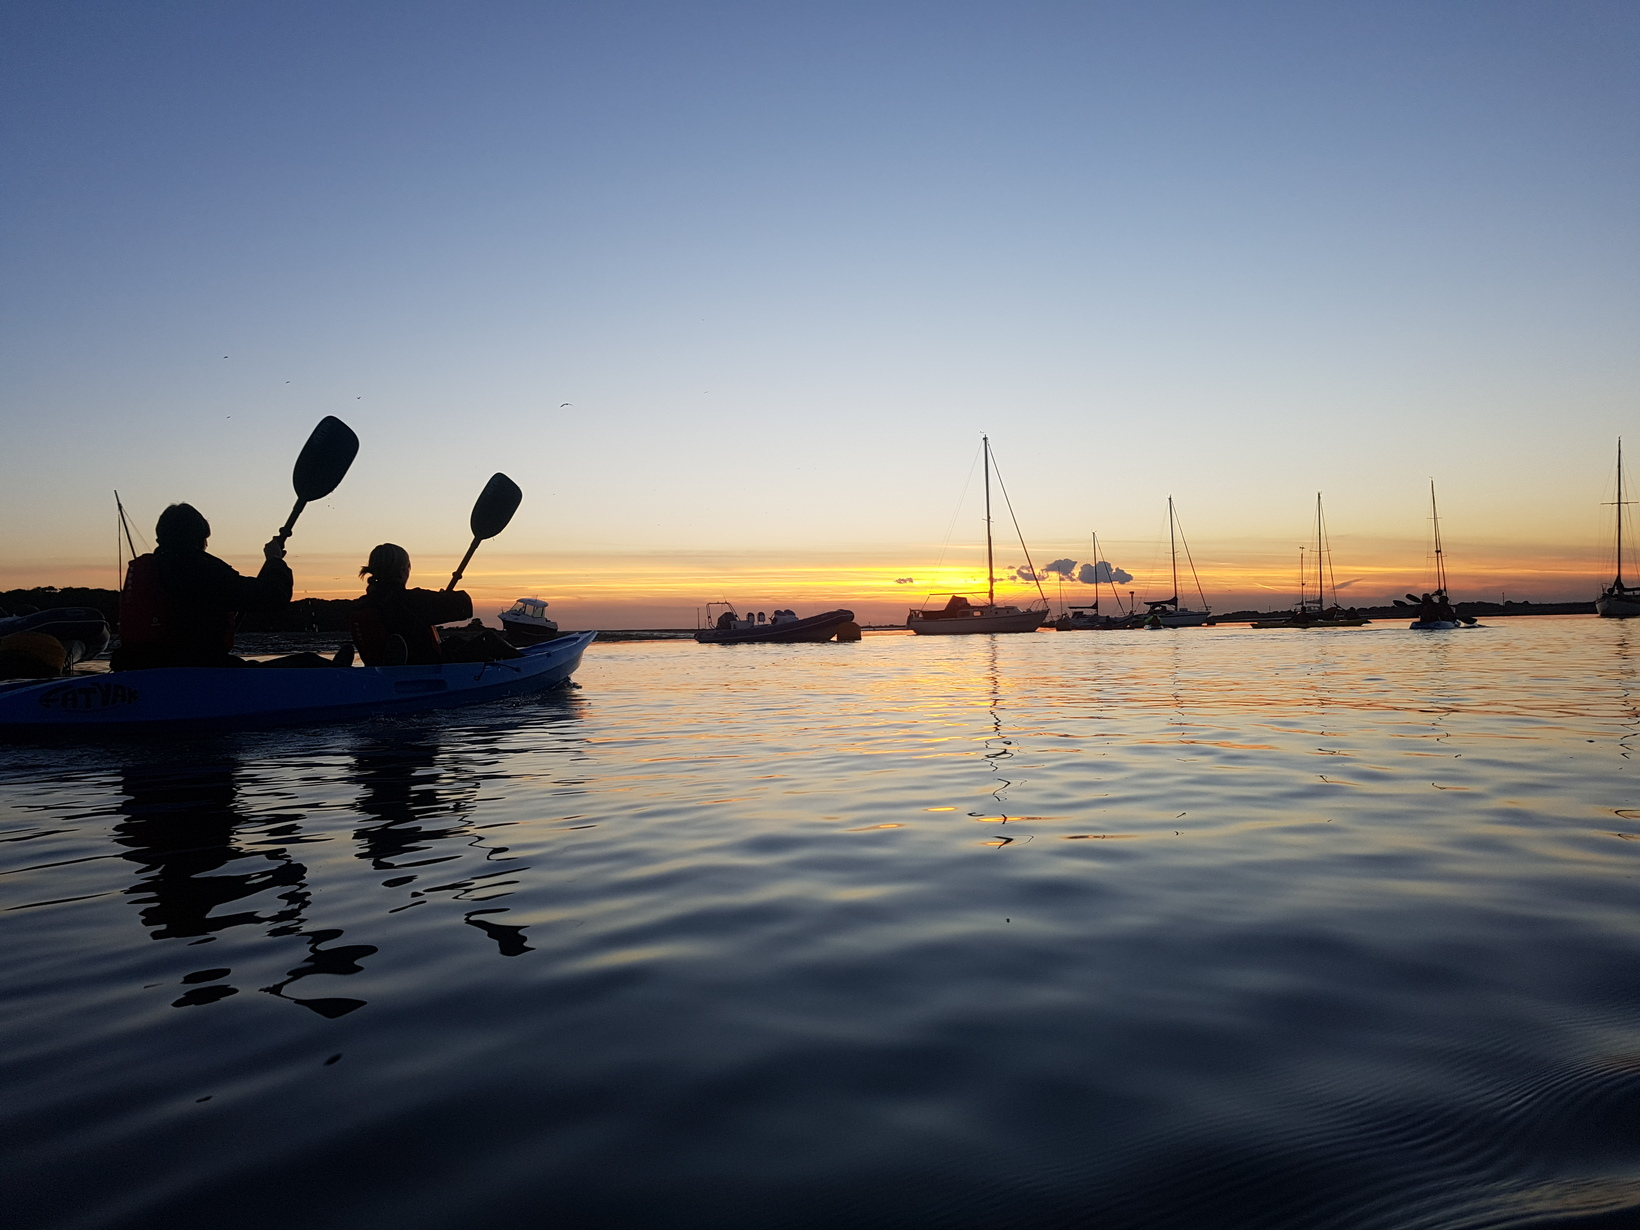 Sunset kayaking on Chichester Harbour